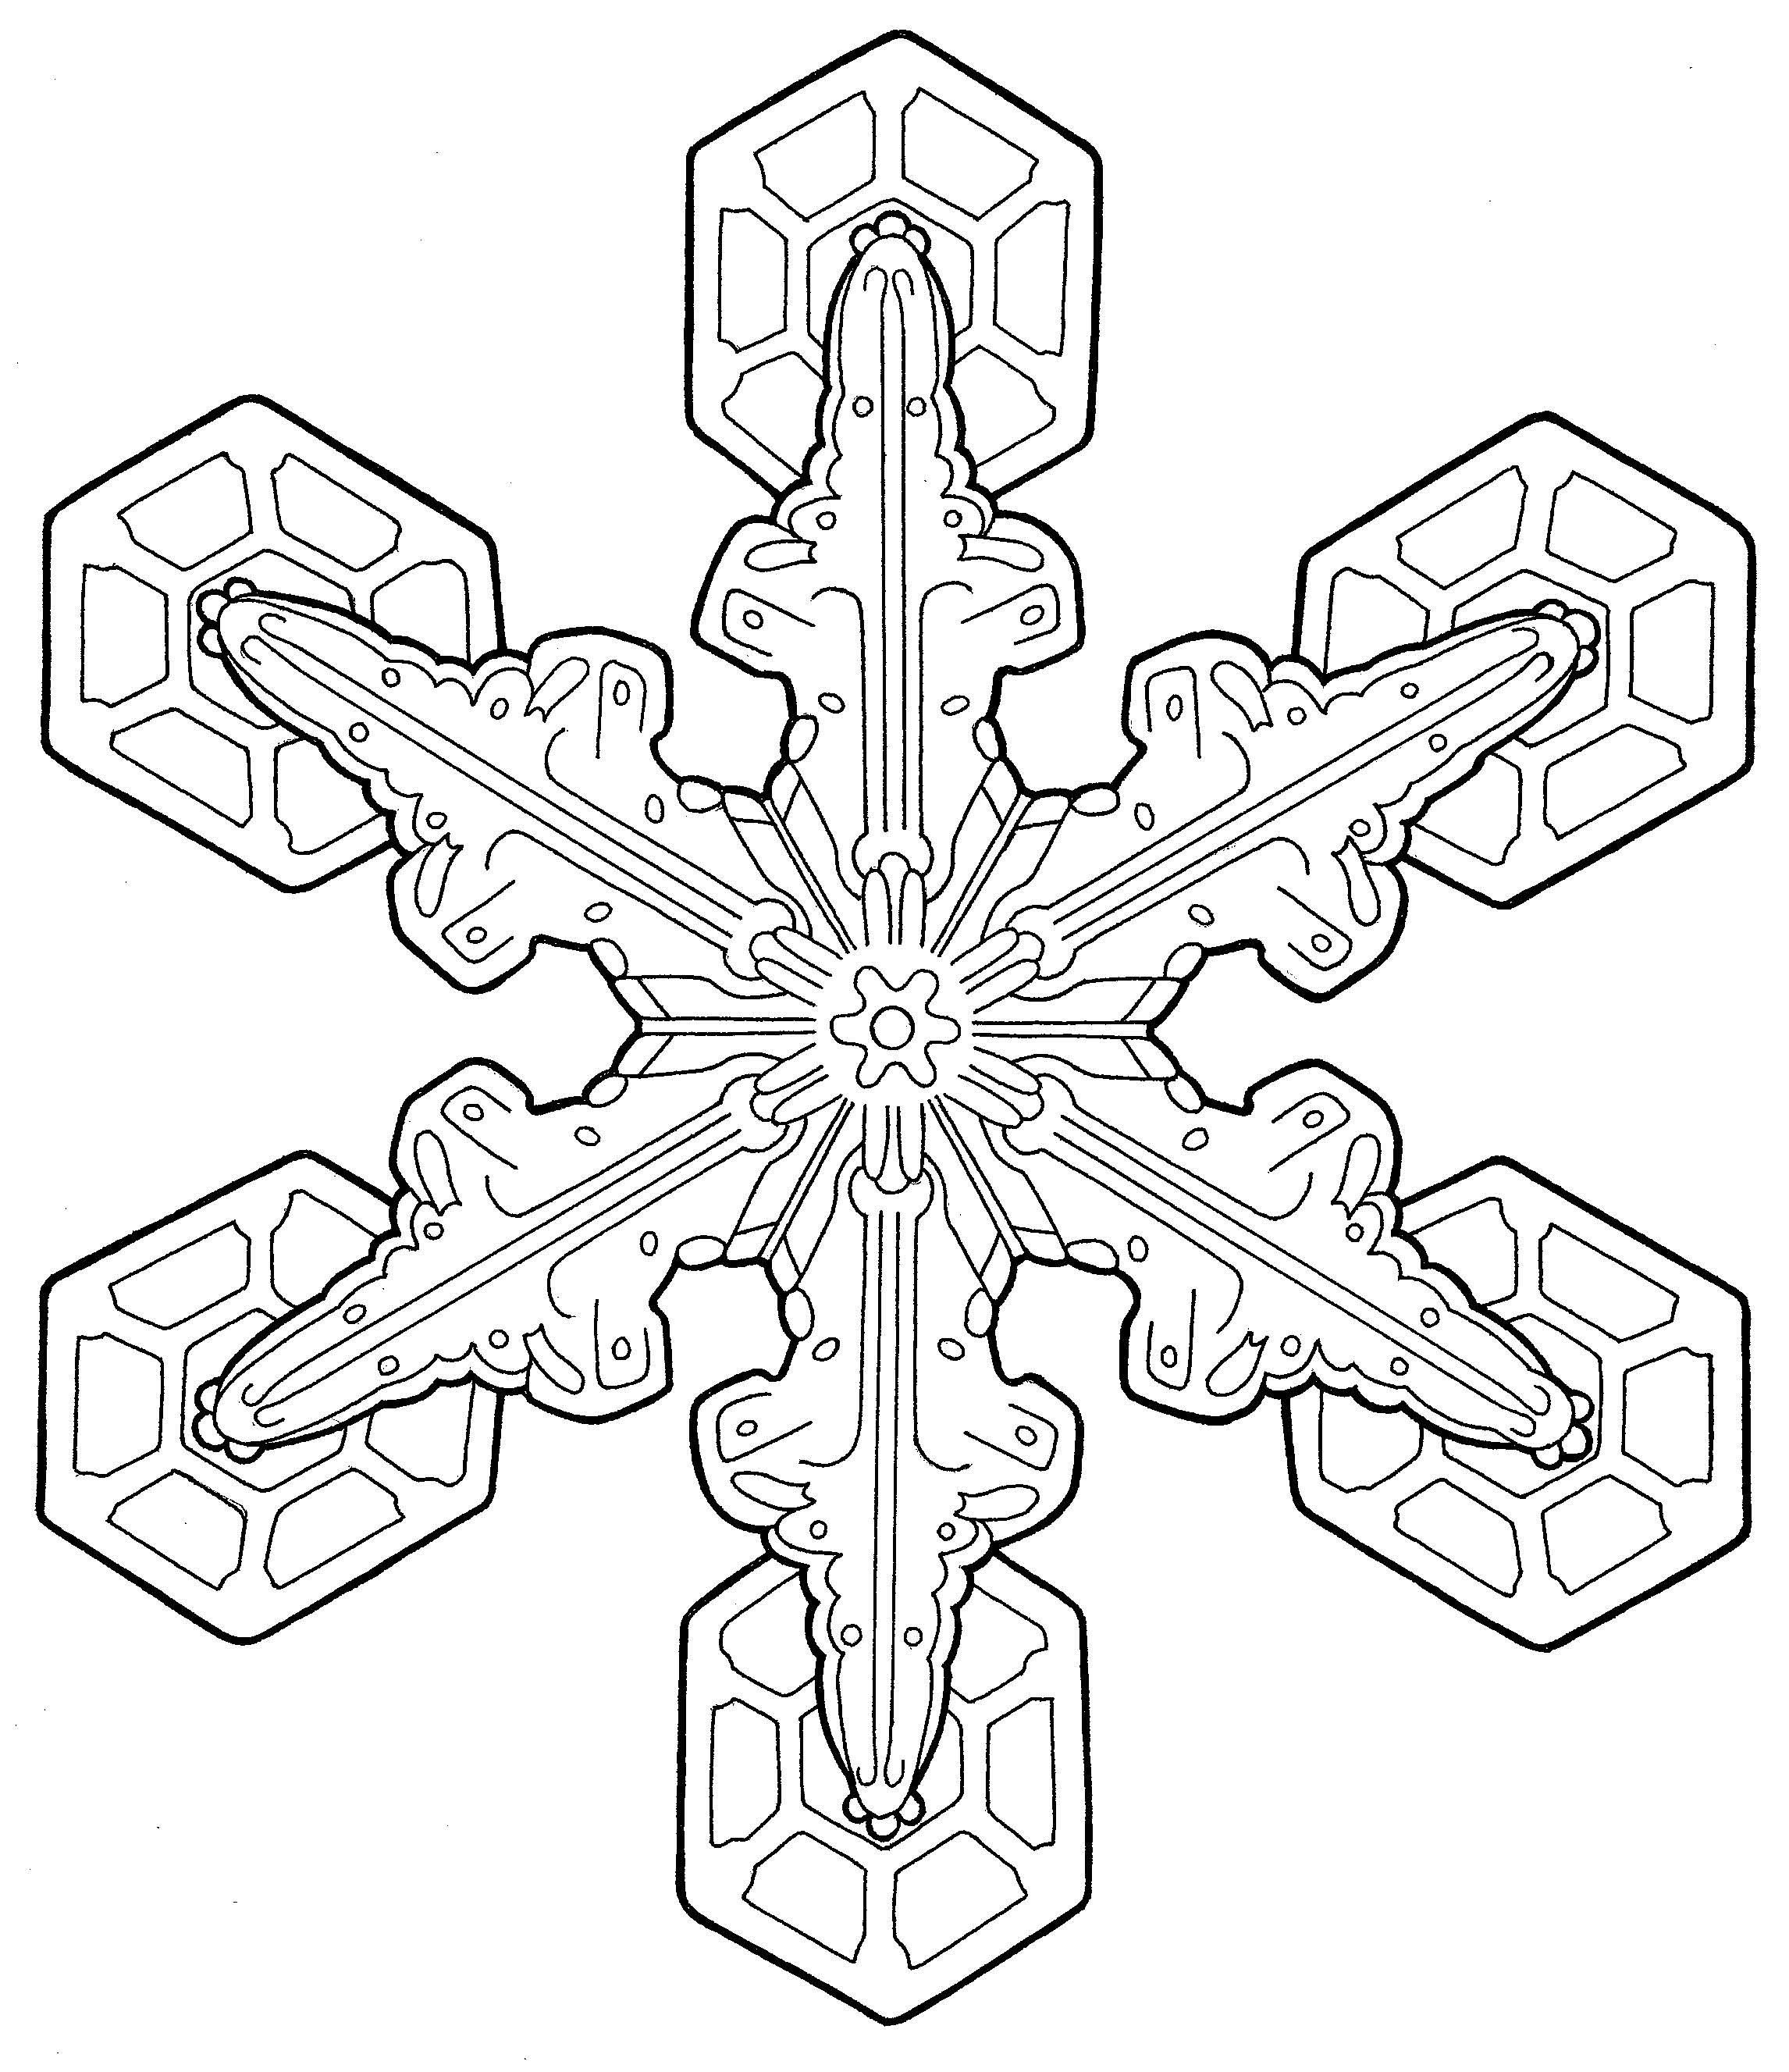 Holiday Coloring Pages Page 6 Image 0001 Image 2292